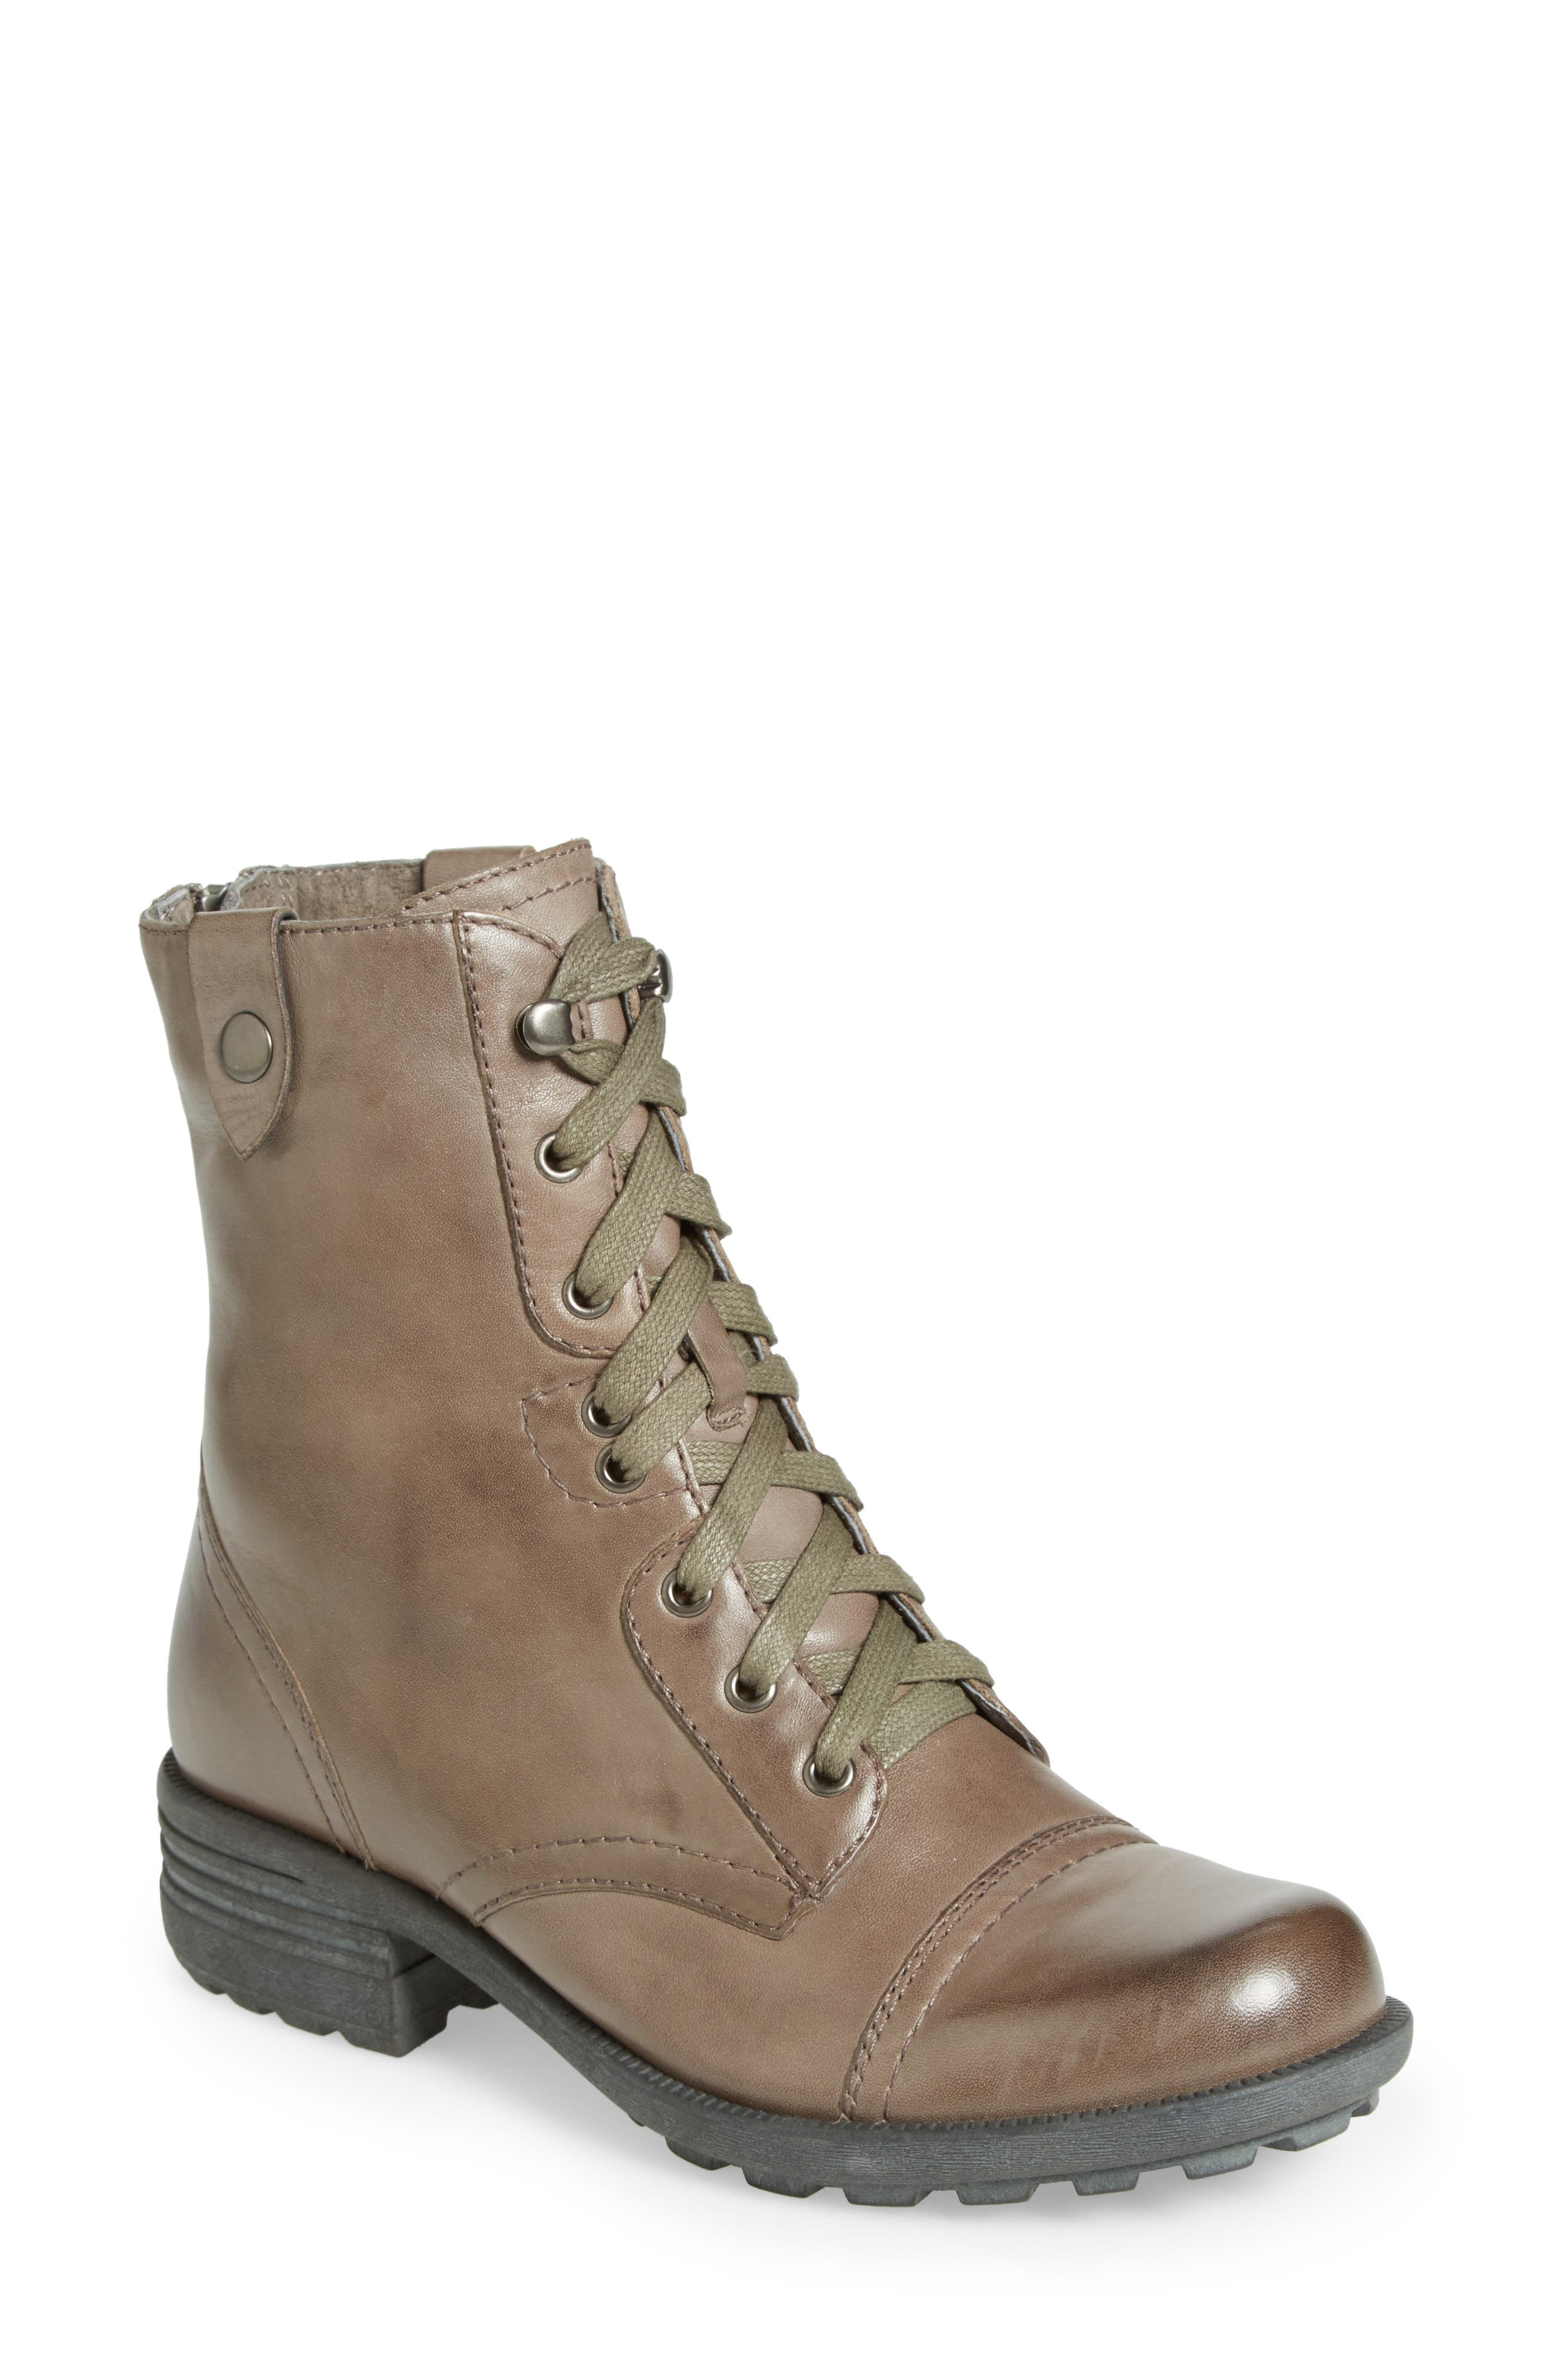 4877a60c93 Women's Hiking Boots | Nordstrom